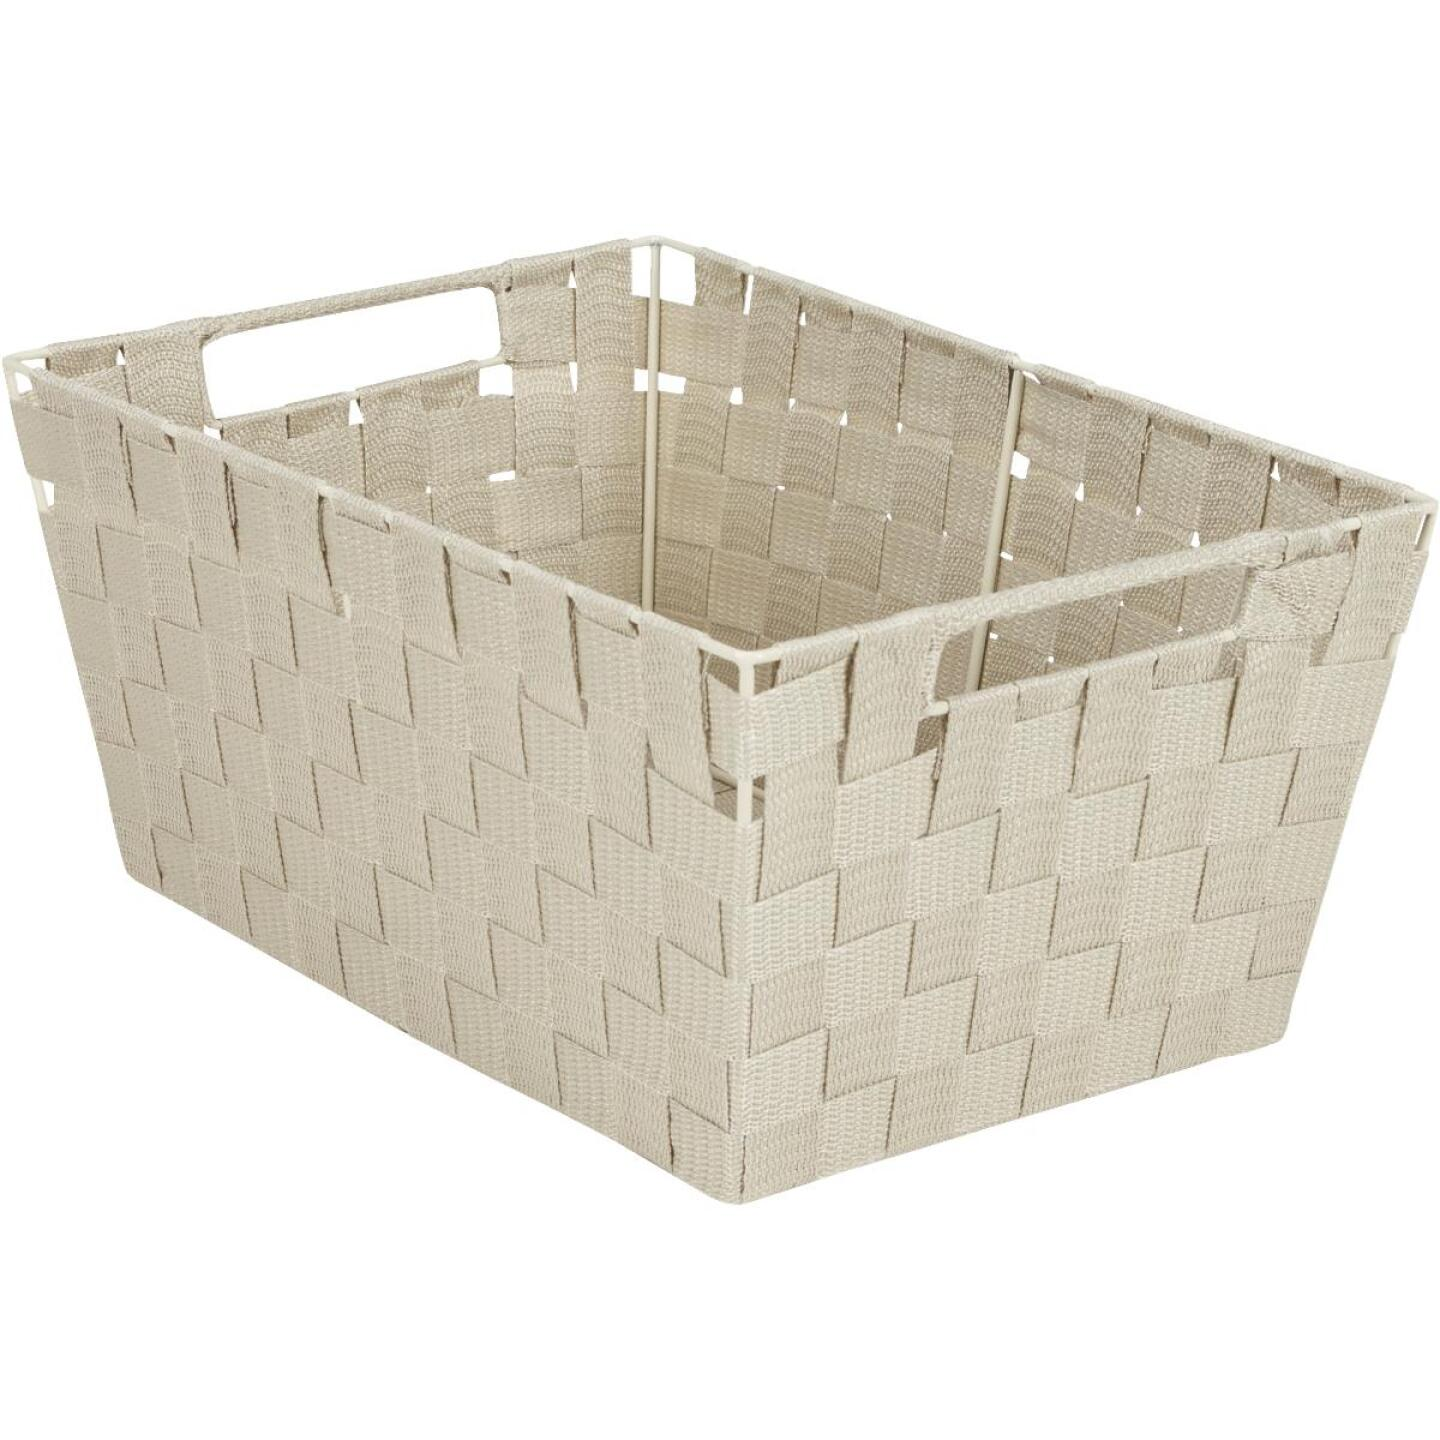 Home Impressions 10 In. W. x 6.75 In. H. x 14 In. L. Woven Storage Basket with Handles, Beige Image 1